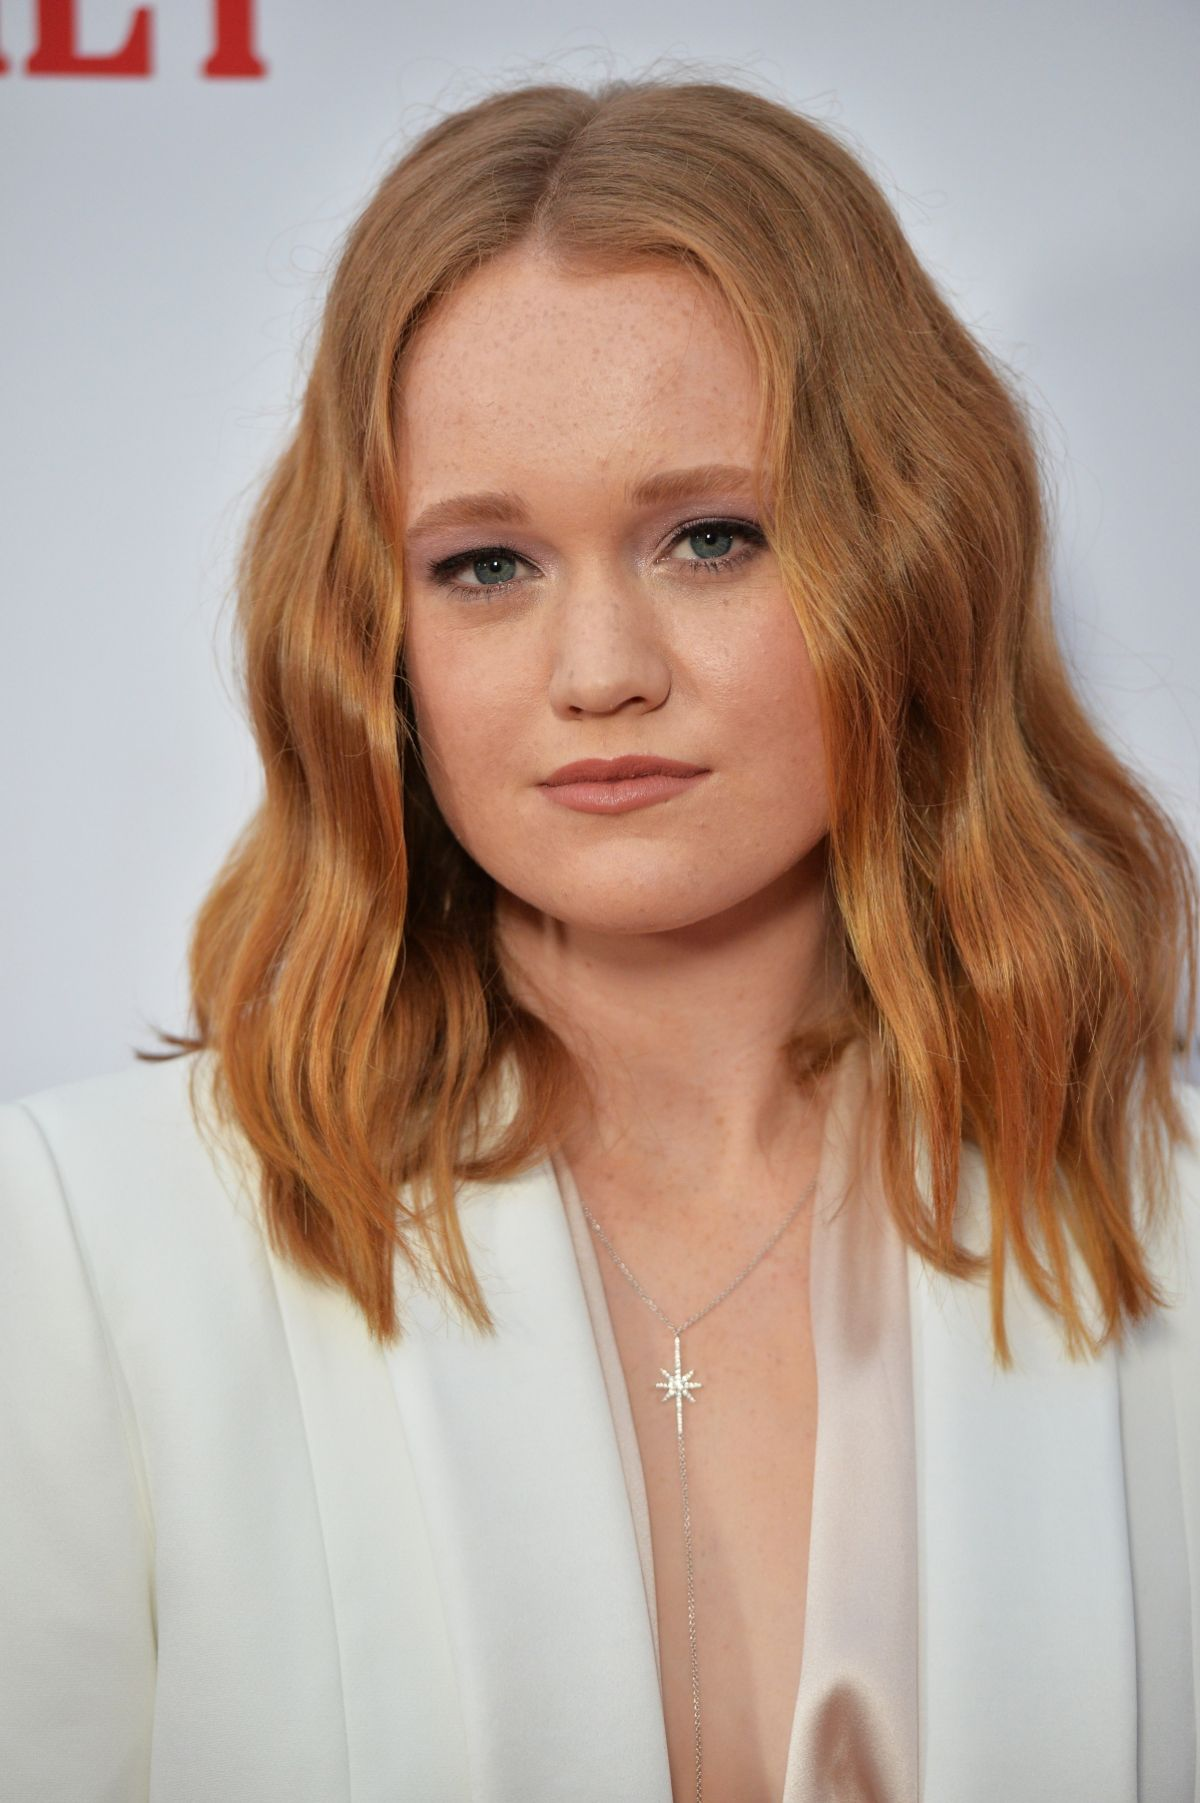 Liv Hewson nudes (61 photo), Tits, Cleavage, Feet, braless 2019